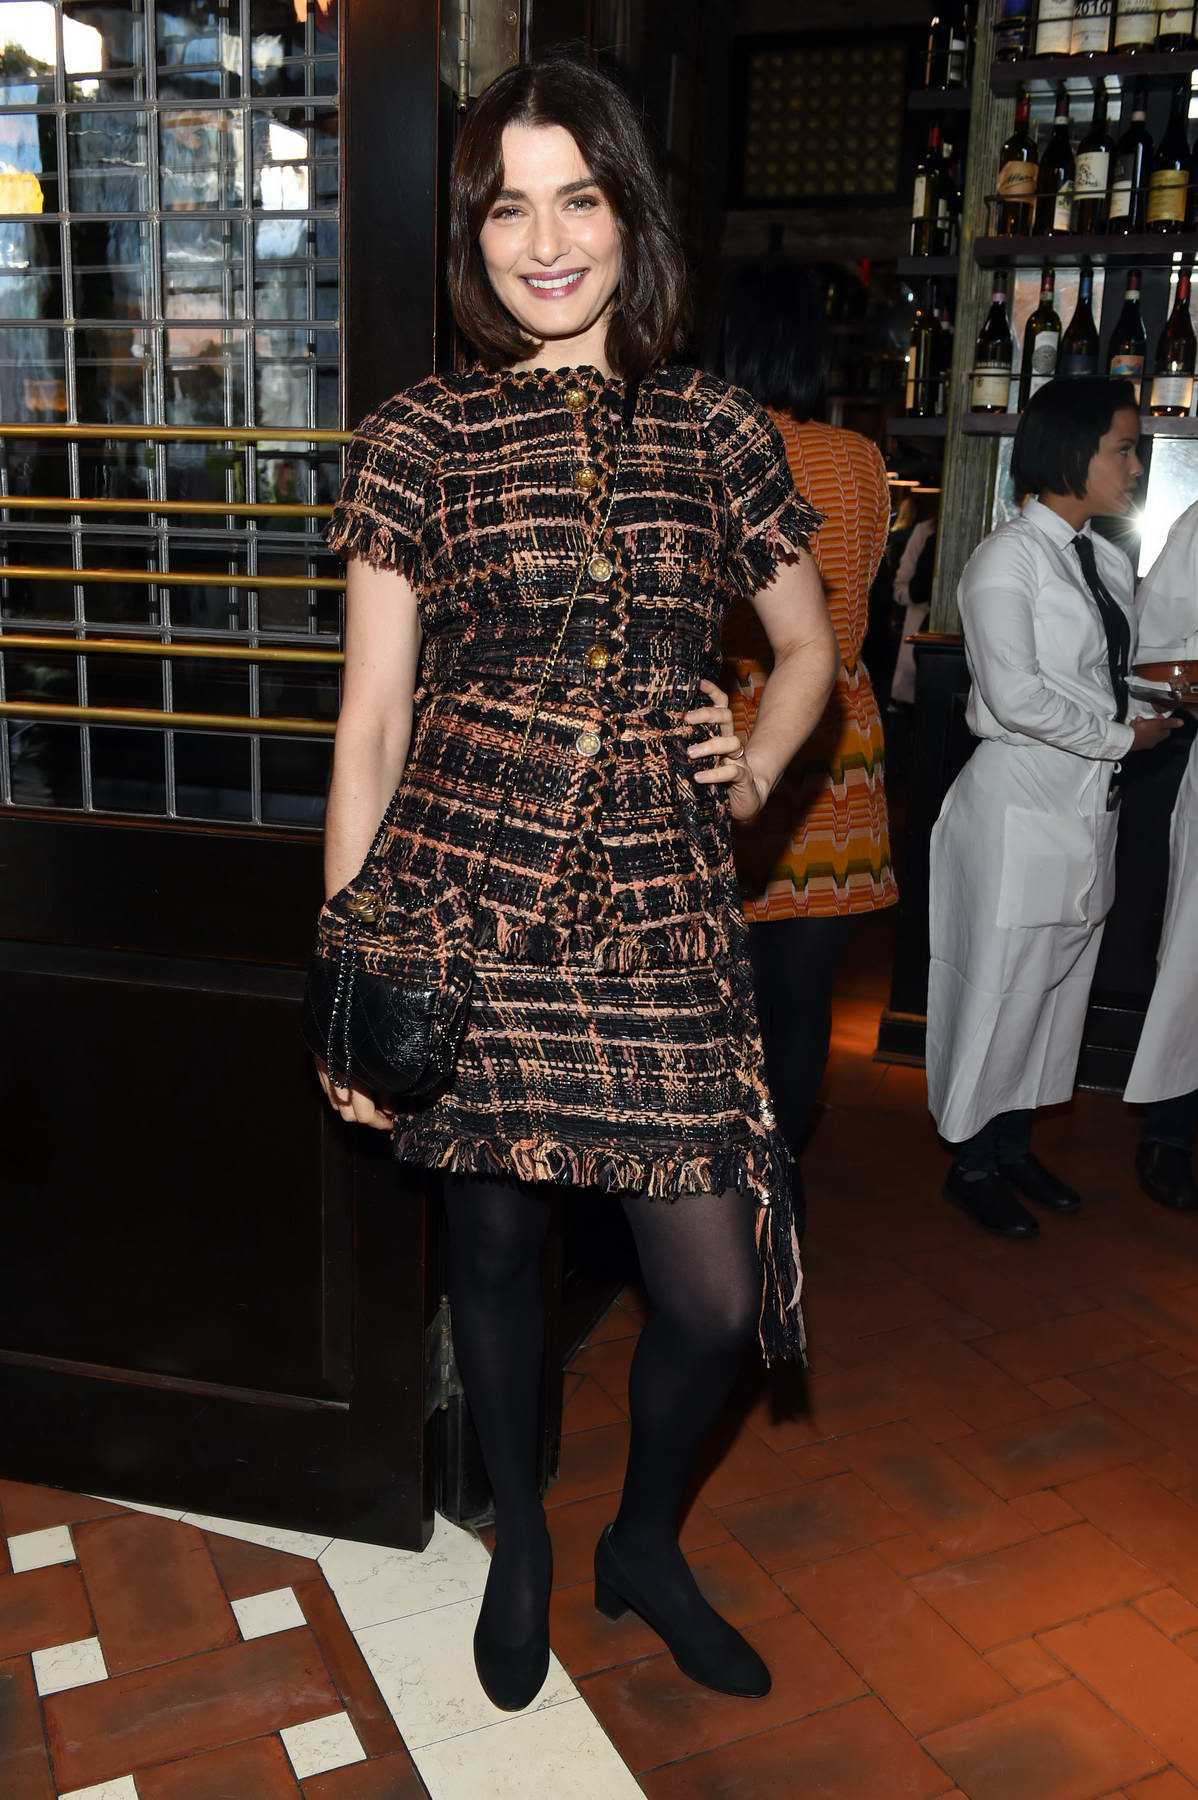 Rachel Weisz at Through Her Lens: The Tribeca Chanel Women's Filmmaker Program Luncheon in New York City